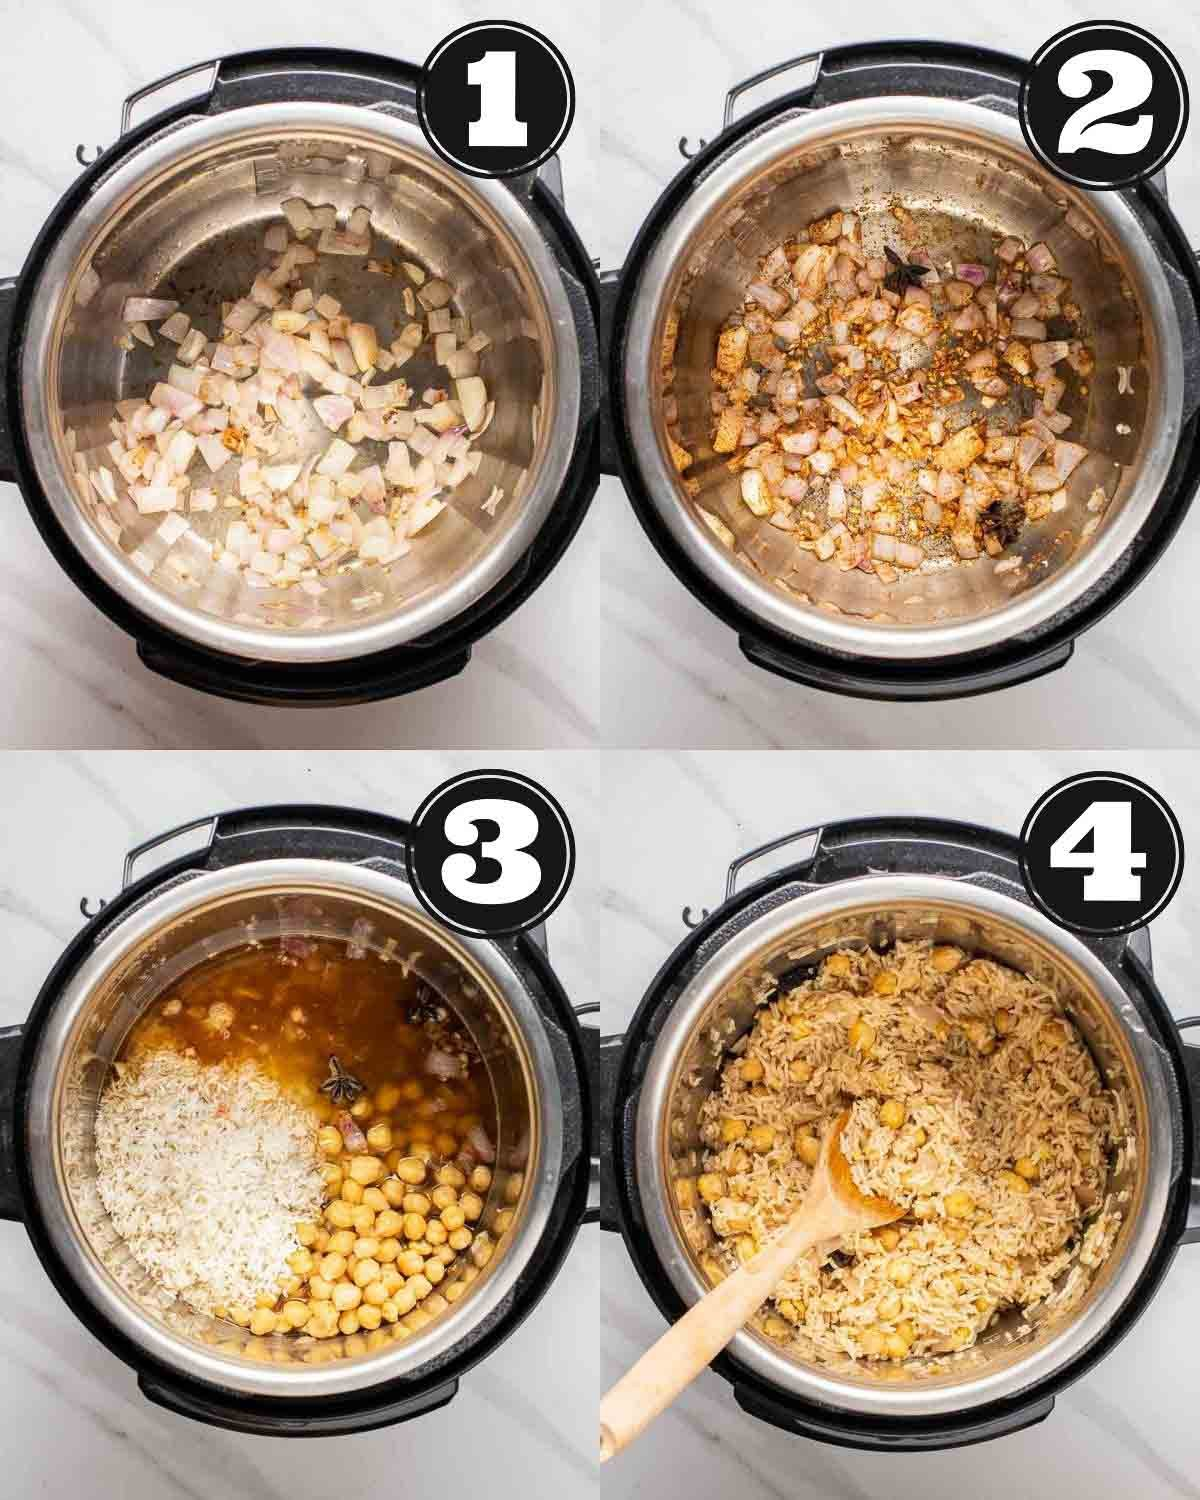 Collage of sauteing onion, adding in garlic and spices, and cooking chickpea pulao in an Instant pot.